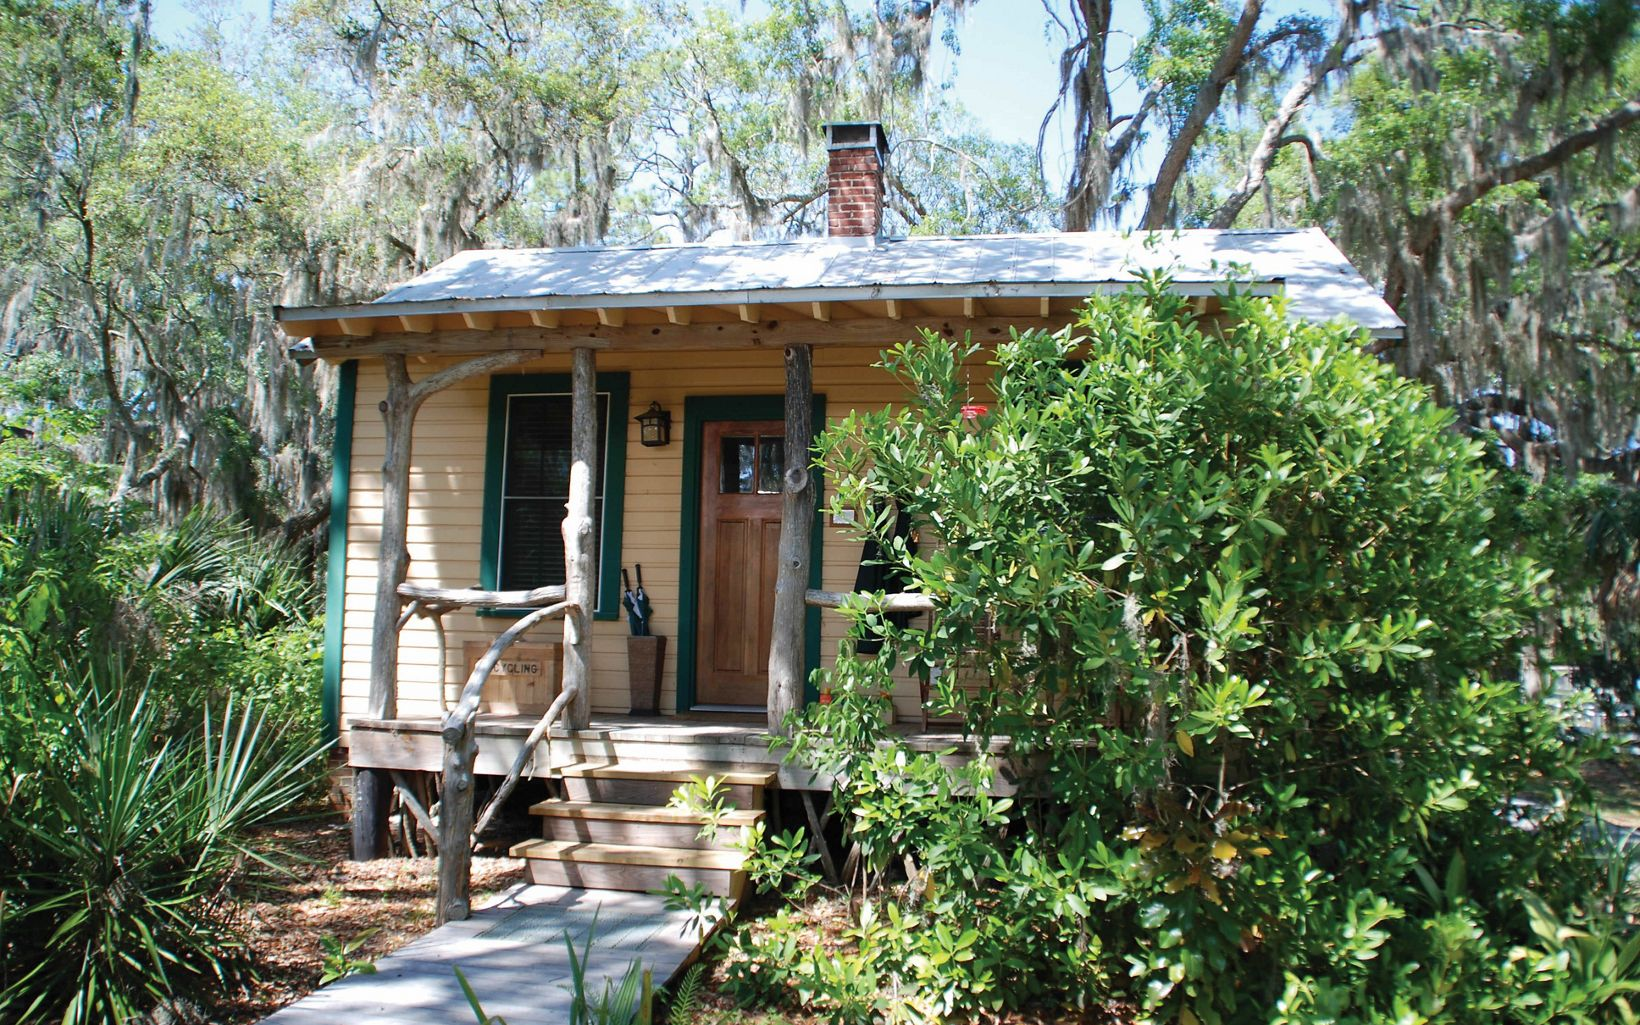 A small cabin accommodation on Little St. Simons Island nestles amongst green grasses and trees draped in spanish moss.